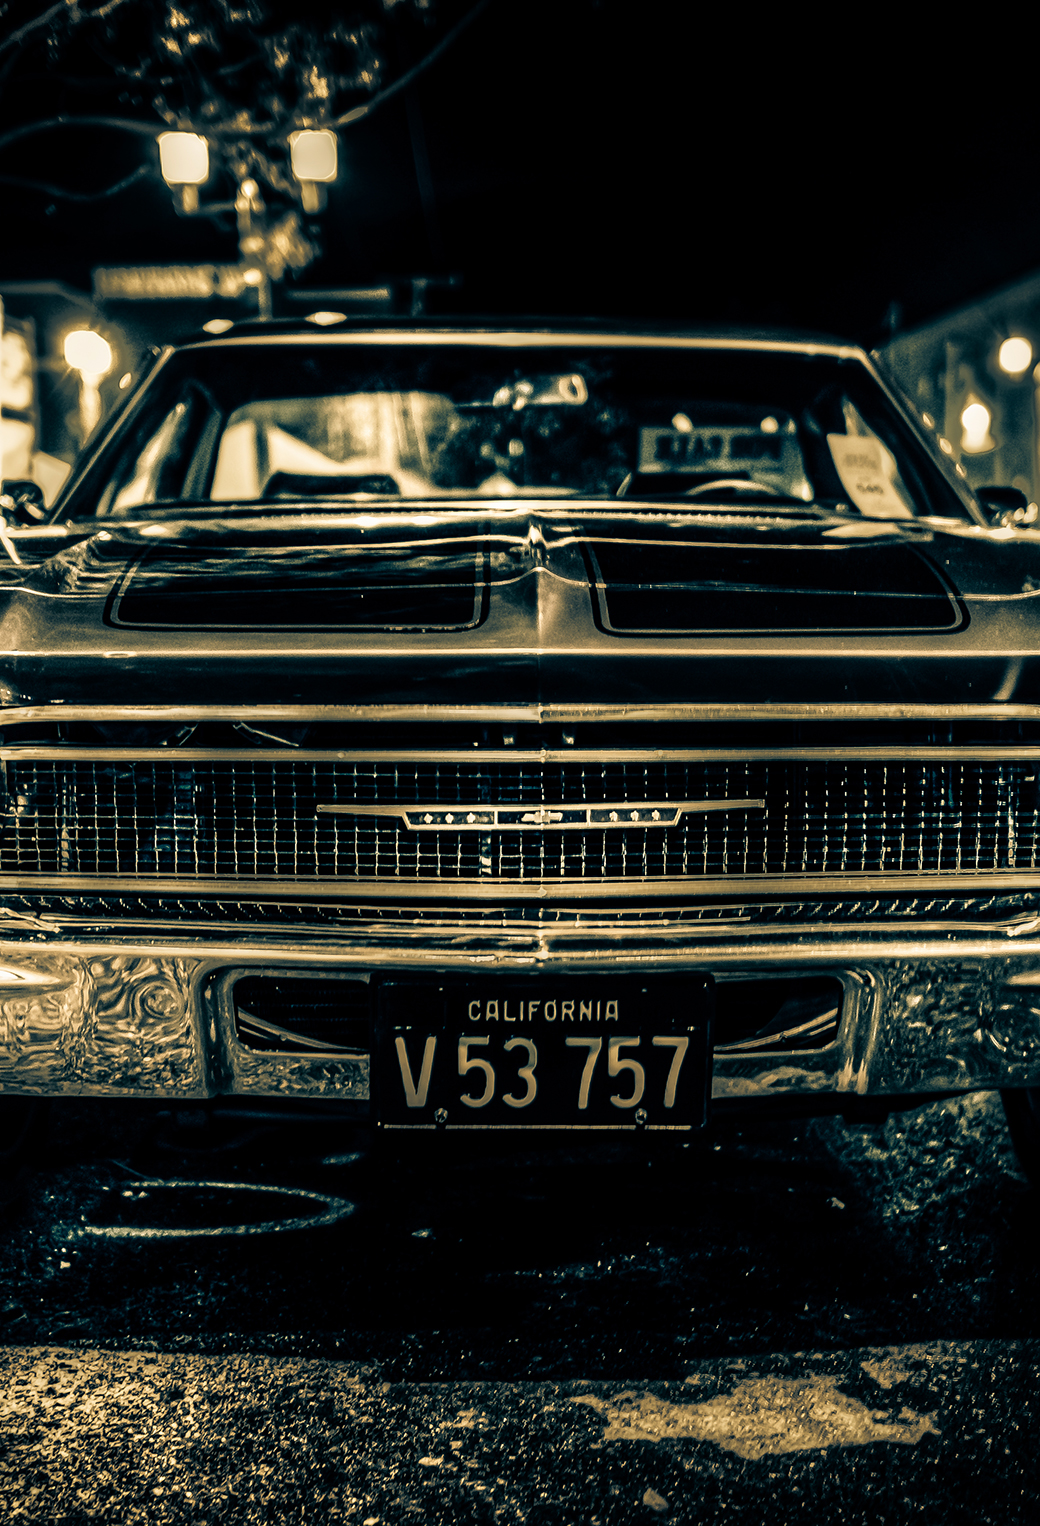 Vintage Chevrolet California Wallpaper For Iphone X 8 7 6 Free